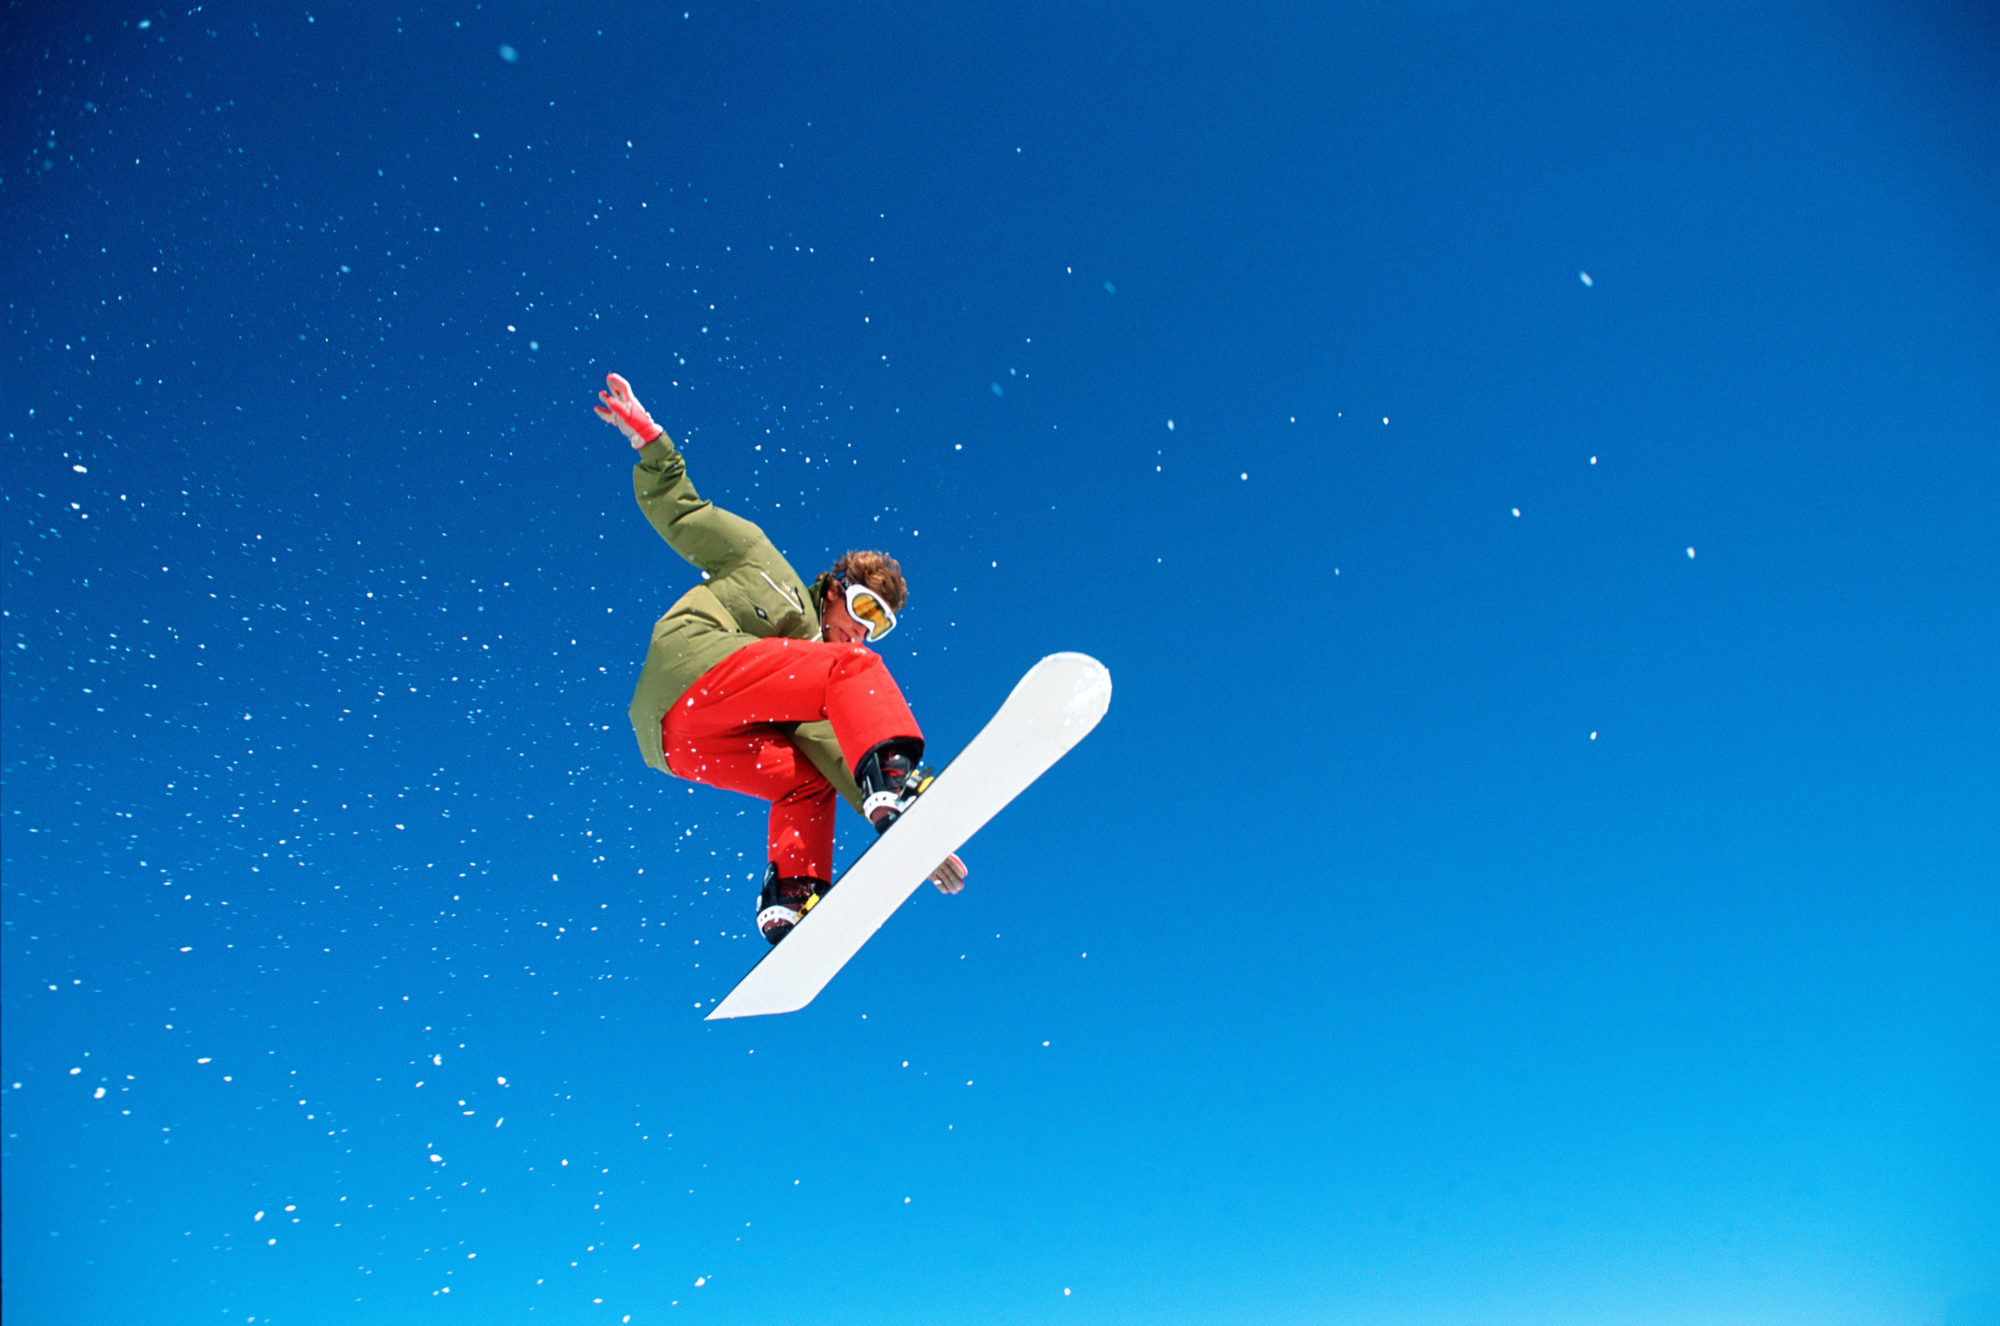 Photo of Athlete in Big Air Snowboarding Competition